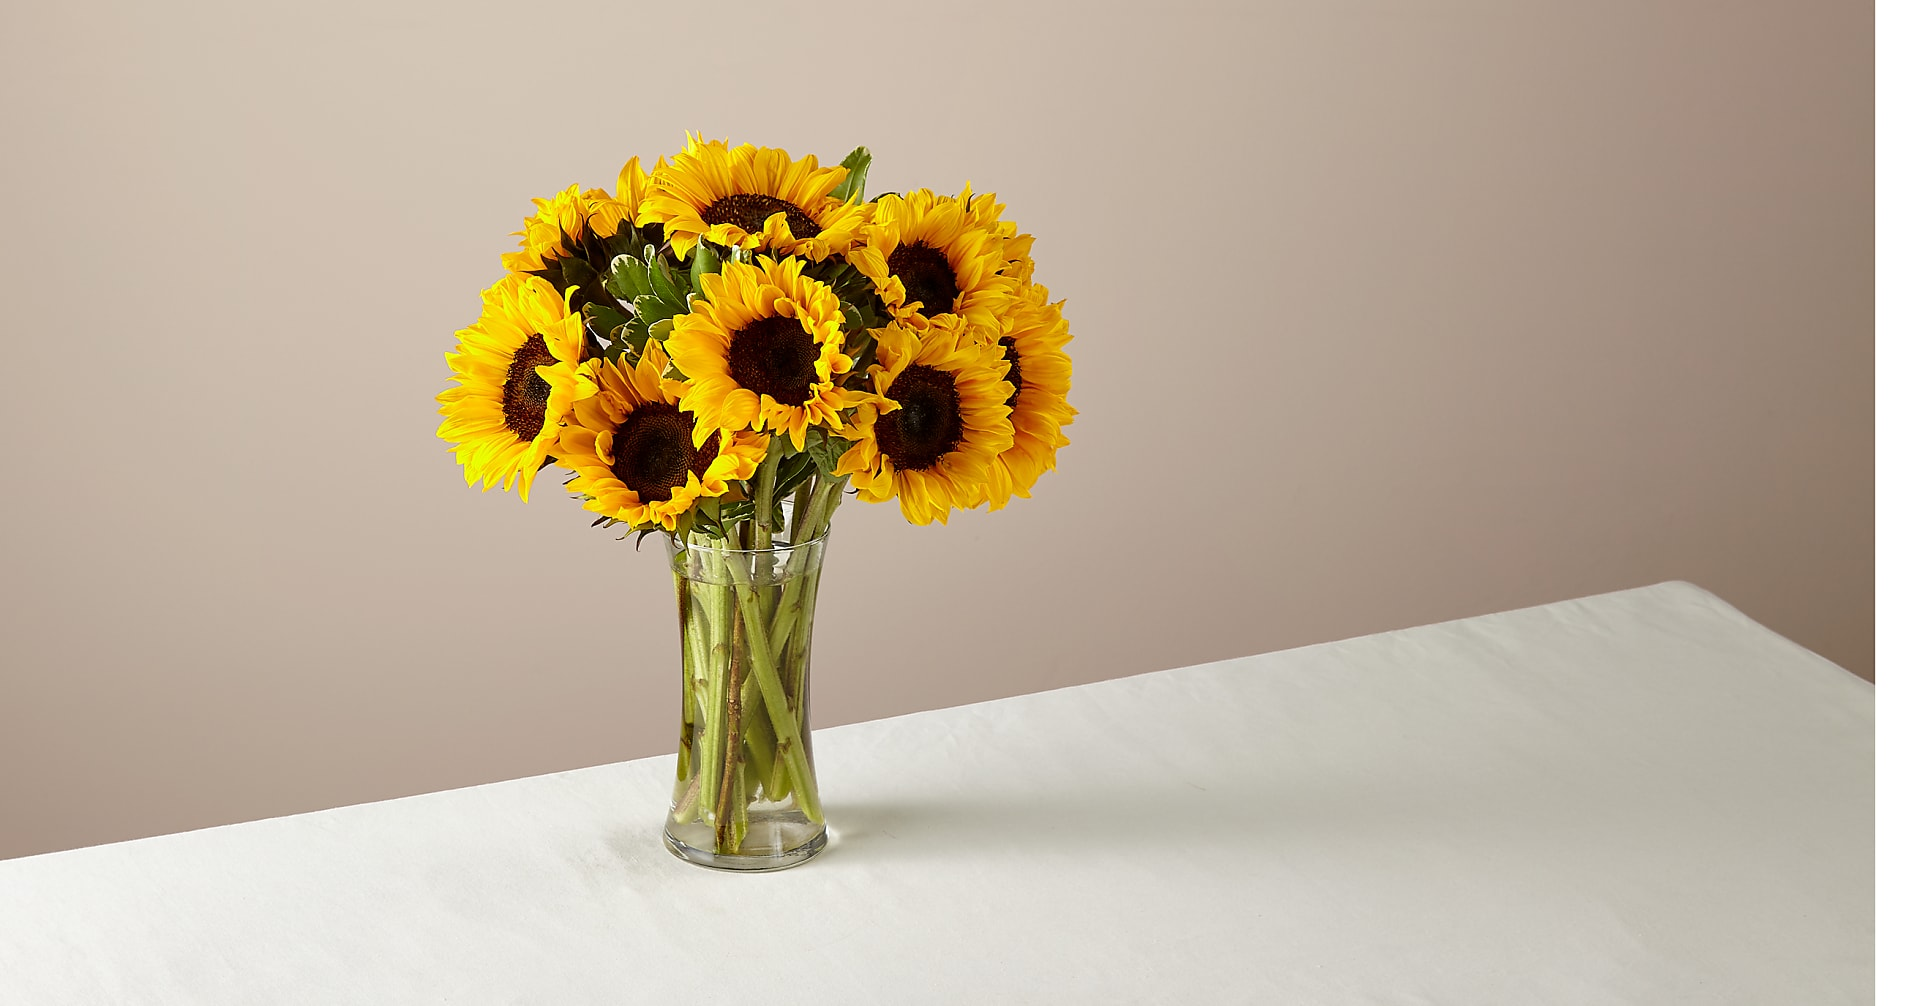 Honey Bee Sunflower Bouquet - Image 1 Of 5